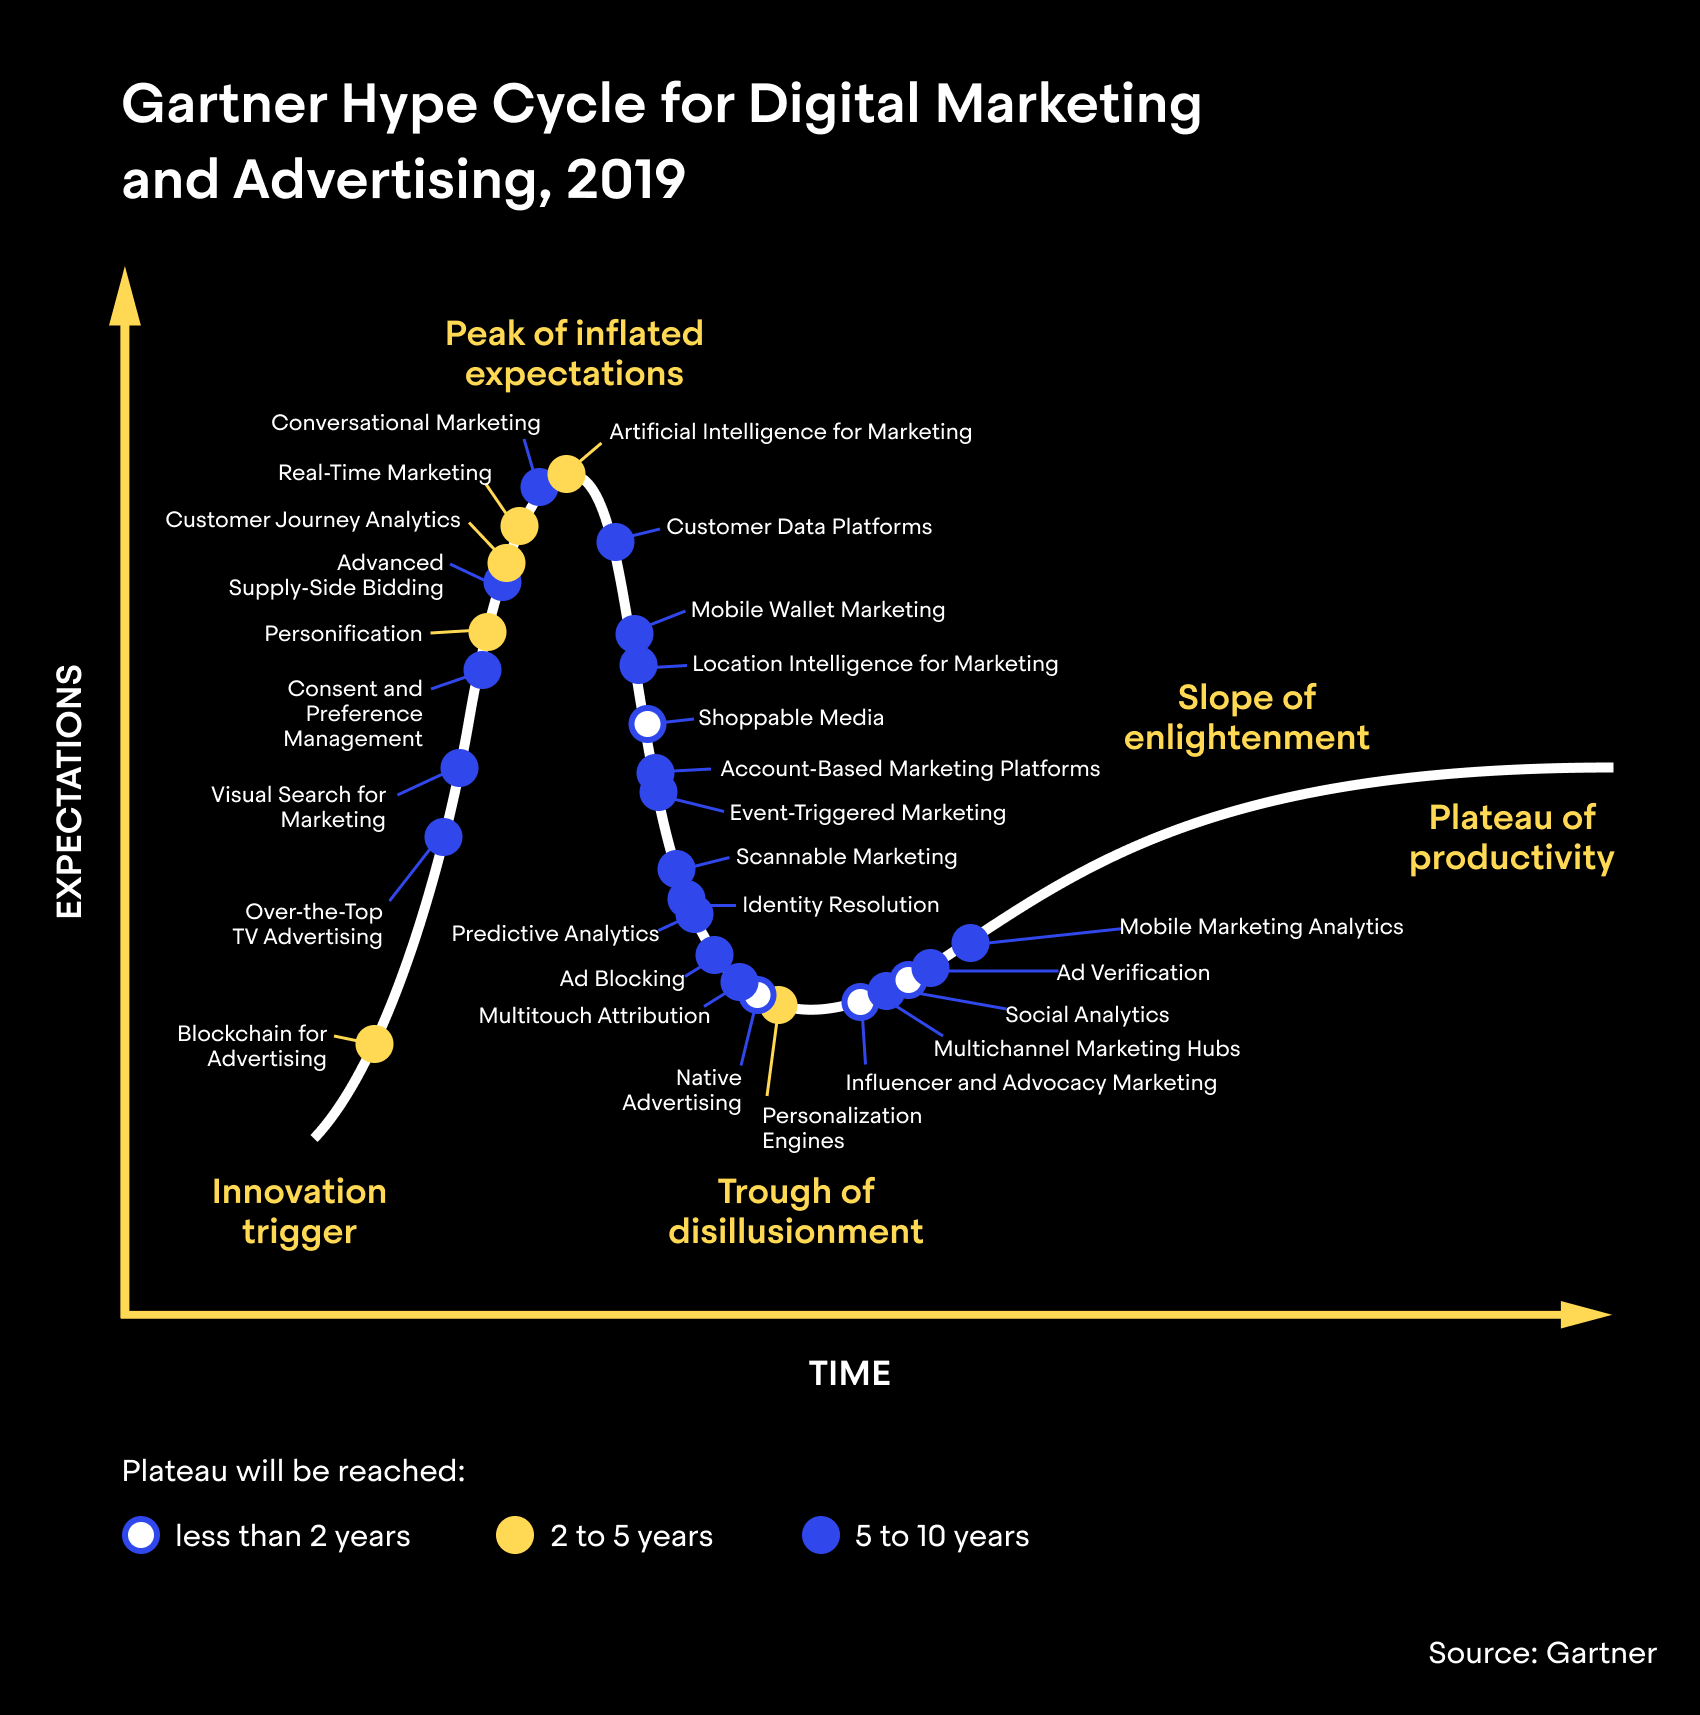 Gartner Hype Cycle for Digital Marketing and Advertising, 2019 (Graph)